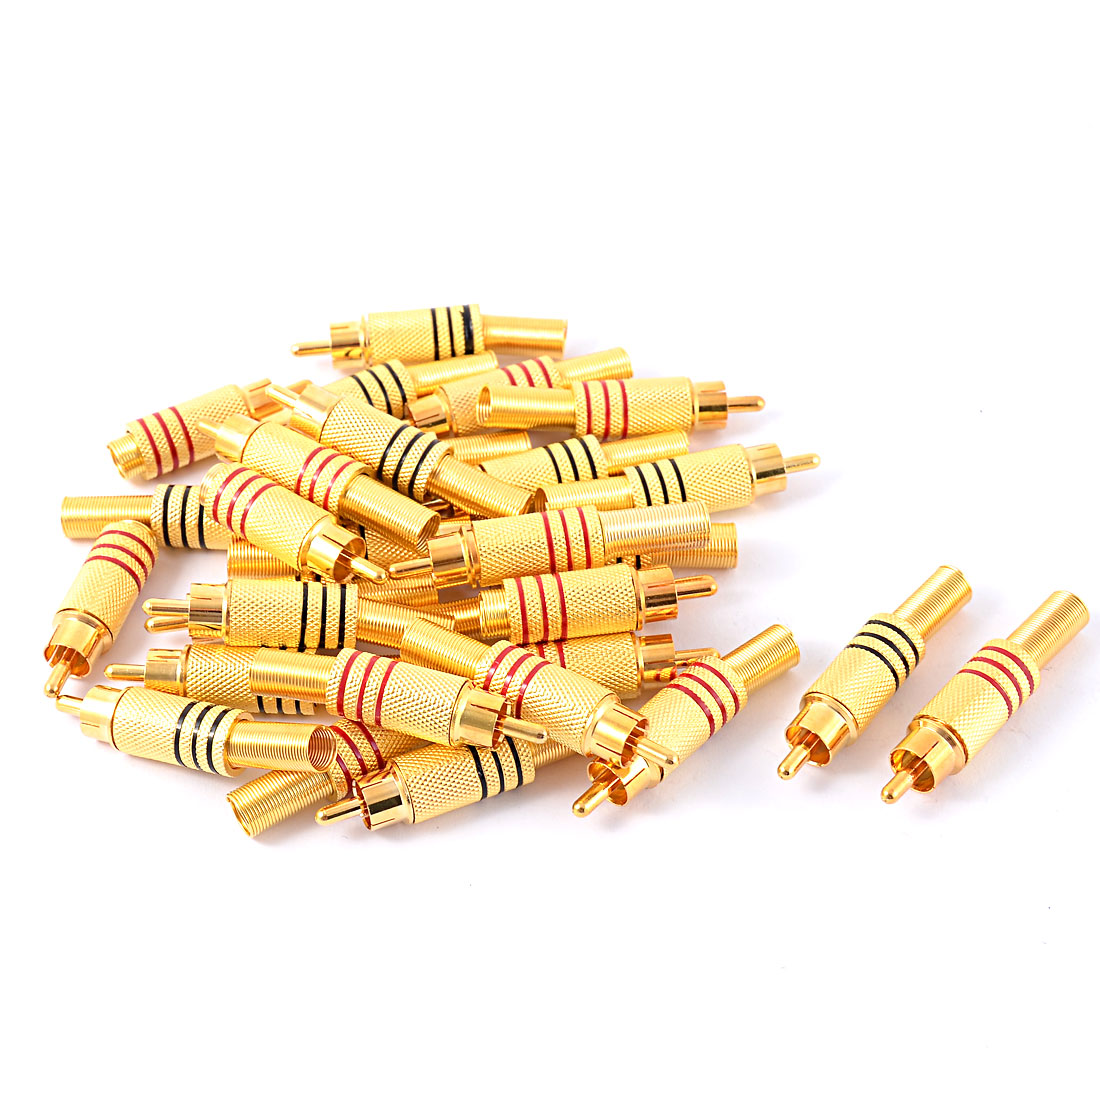 30pcs Metal Spring RCA Male Socket Audio Video Coaxial Coax Cable Connector Coupler